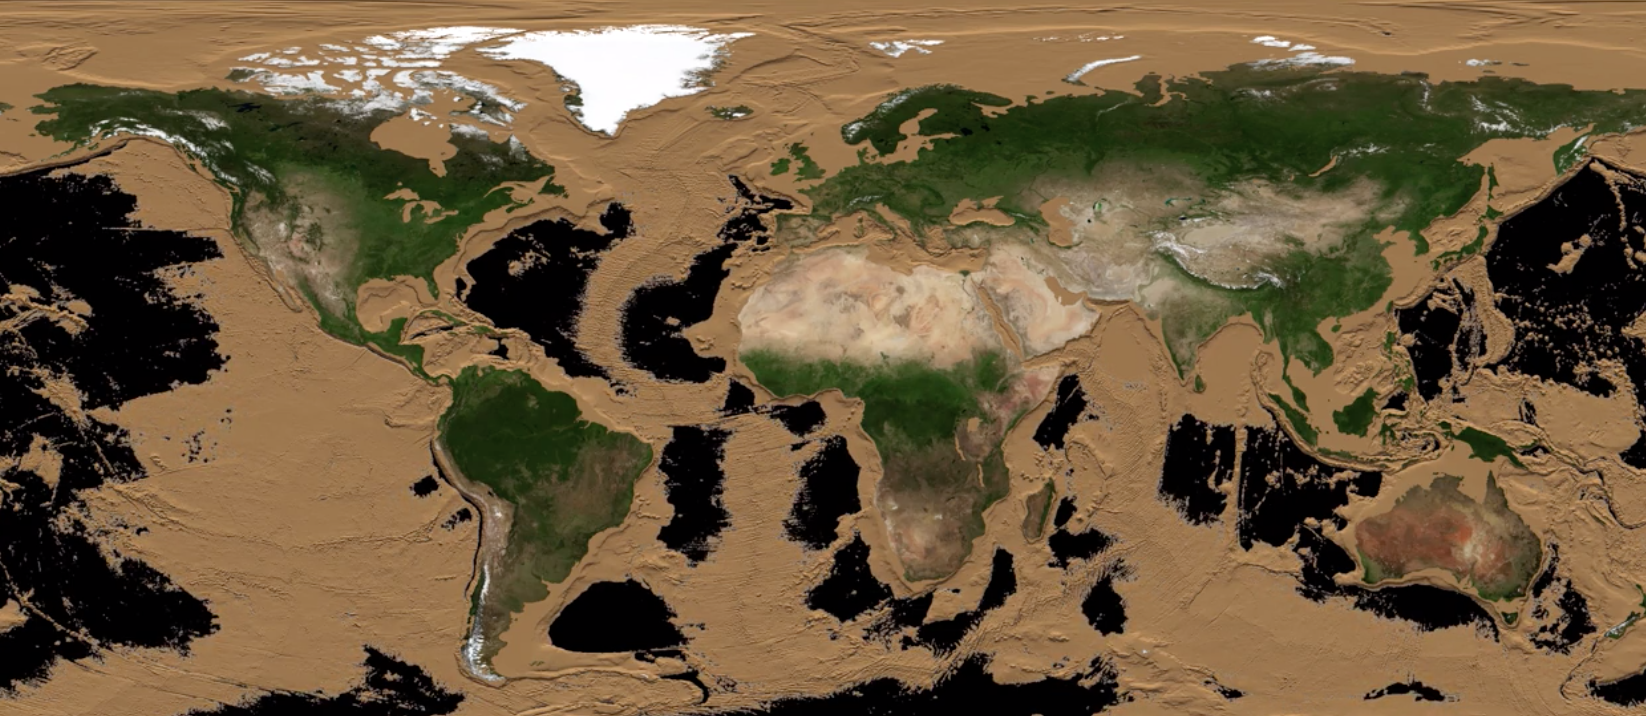 Visualizing What Earth Would Look Like If All The Oceans Were Drained